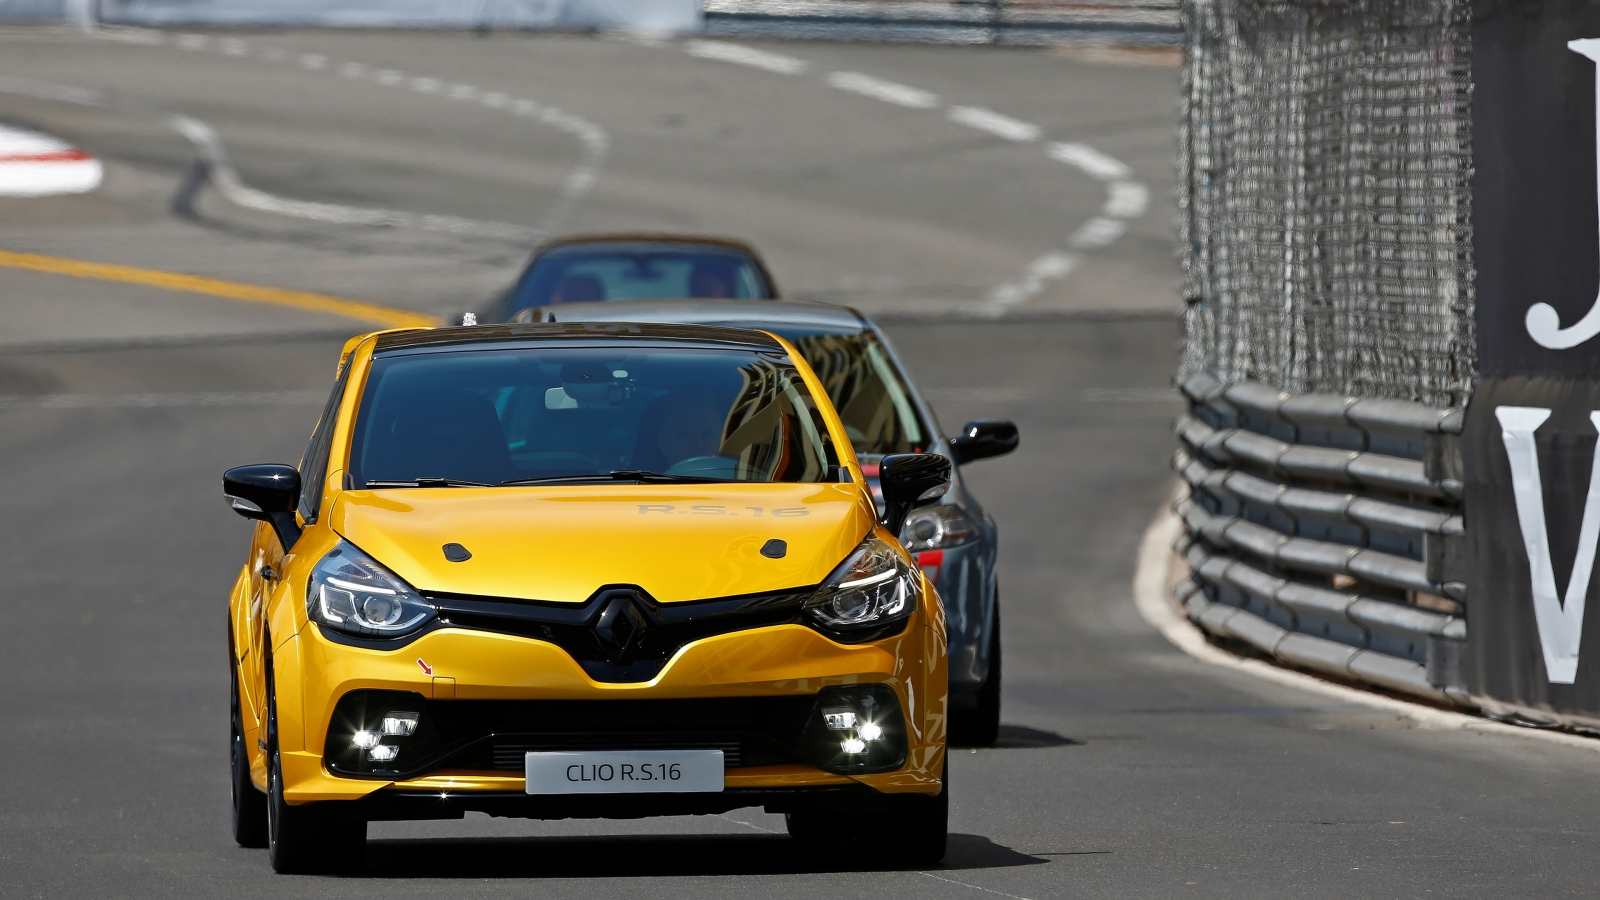 Renault Clio RS 16 Concept 2016 - Photo 27 - Taille: 1600x900